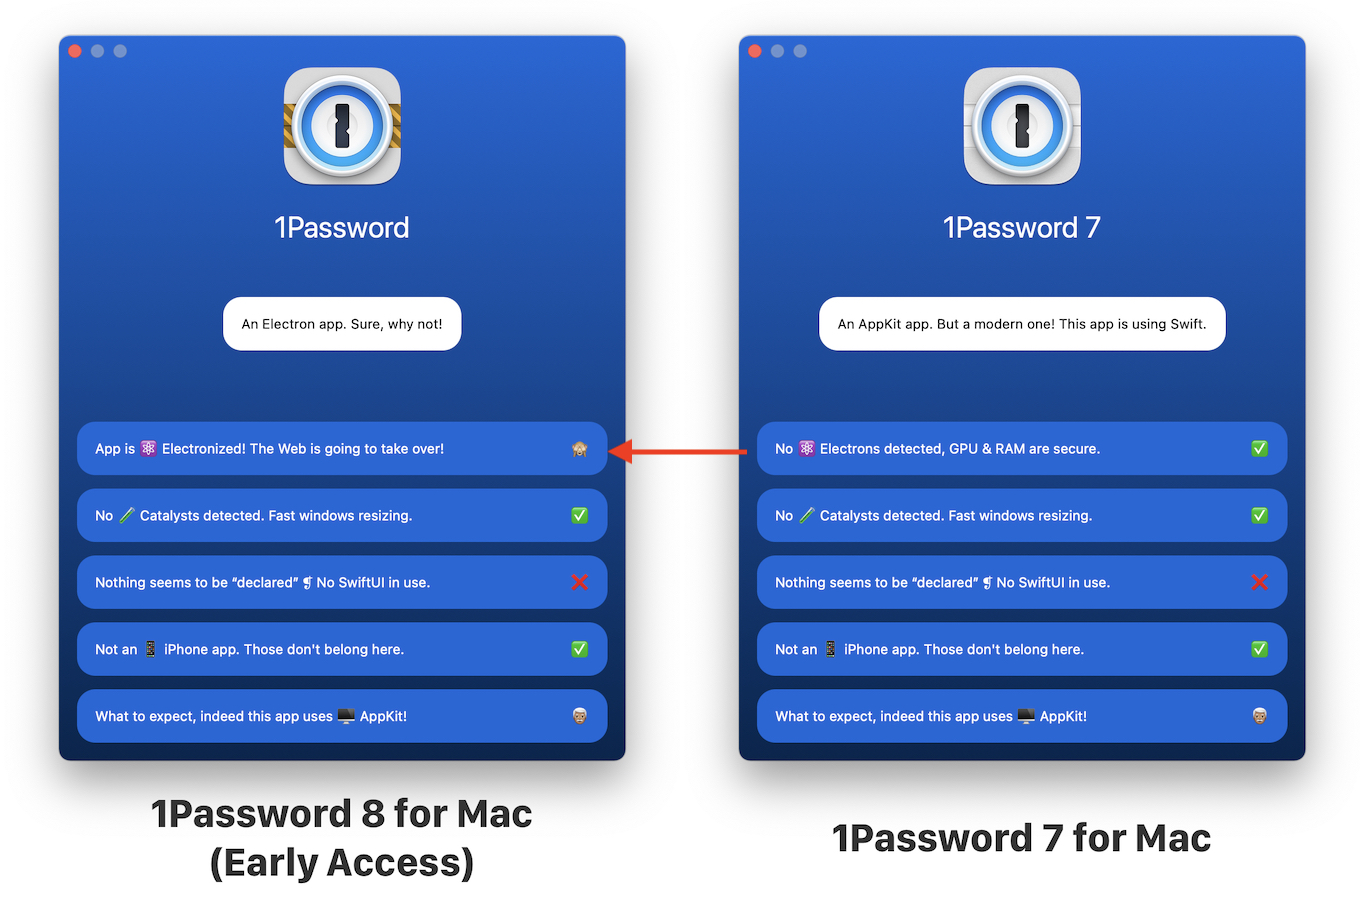 1Password 8 for Mac now electron